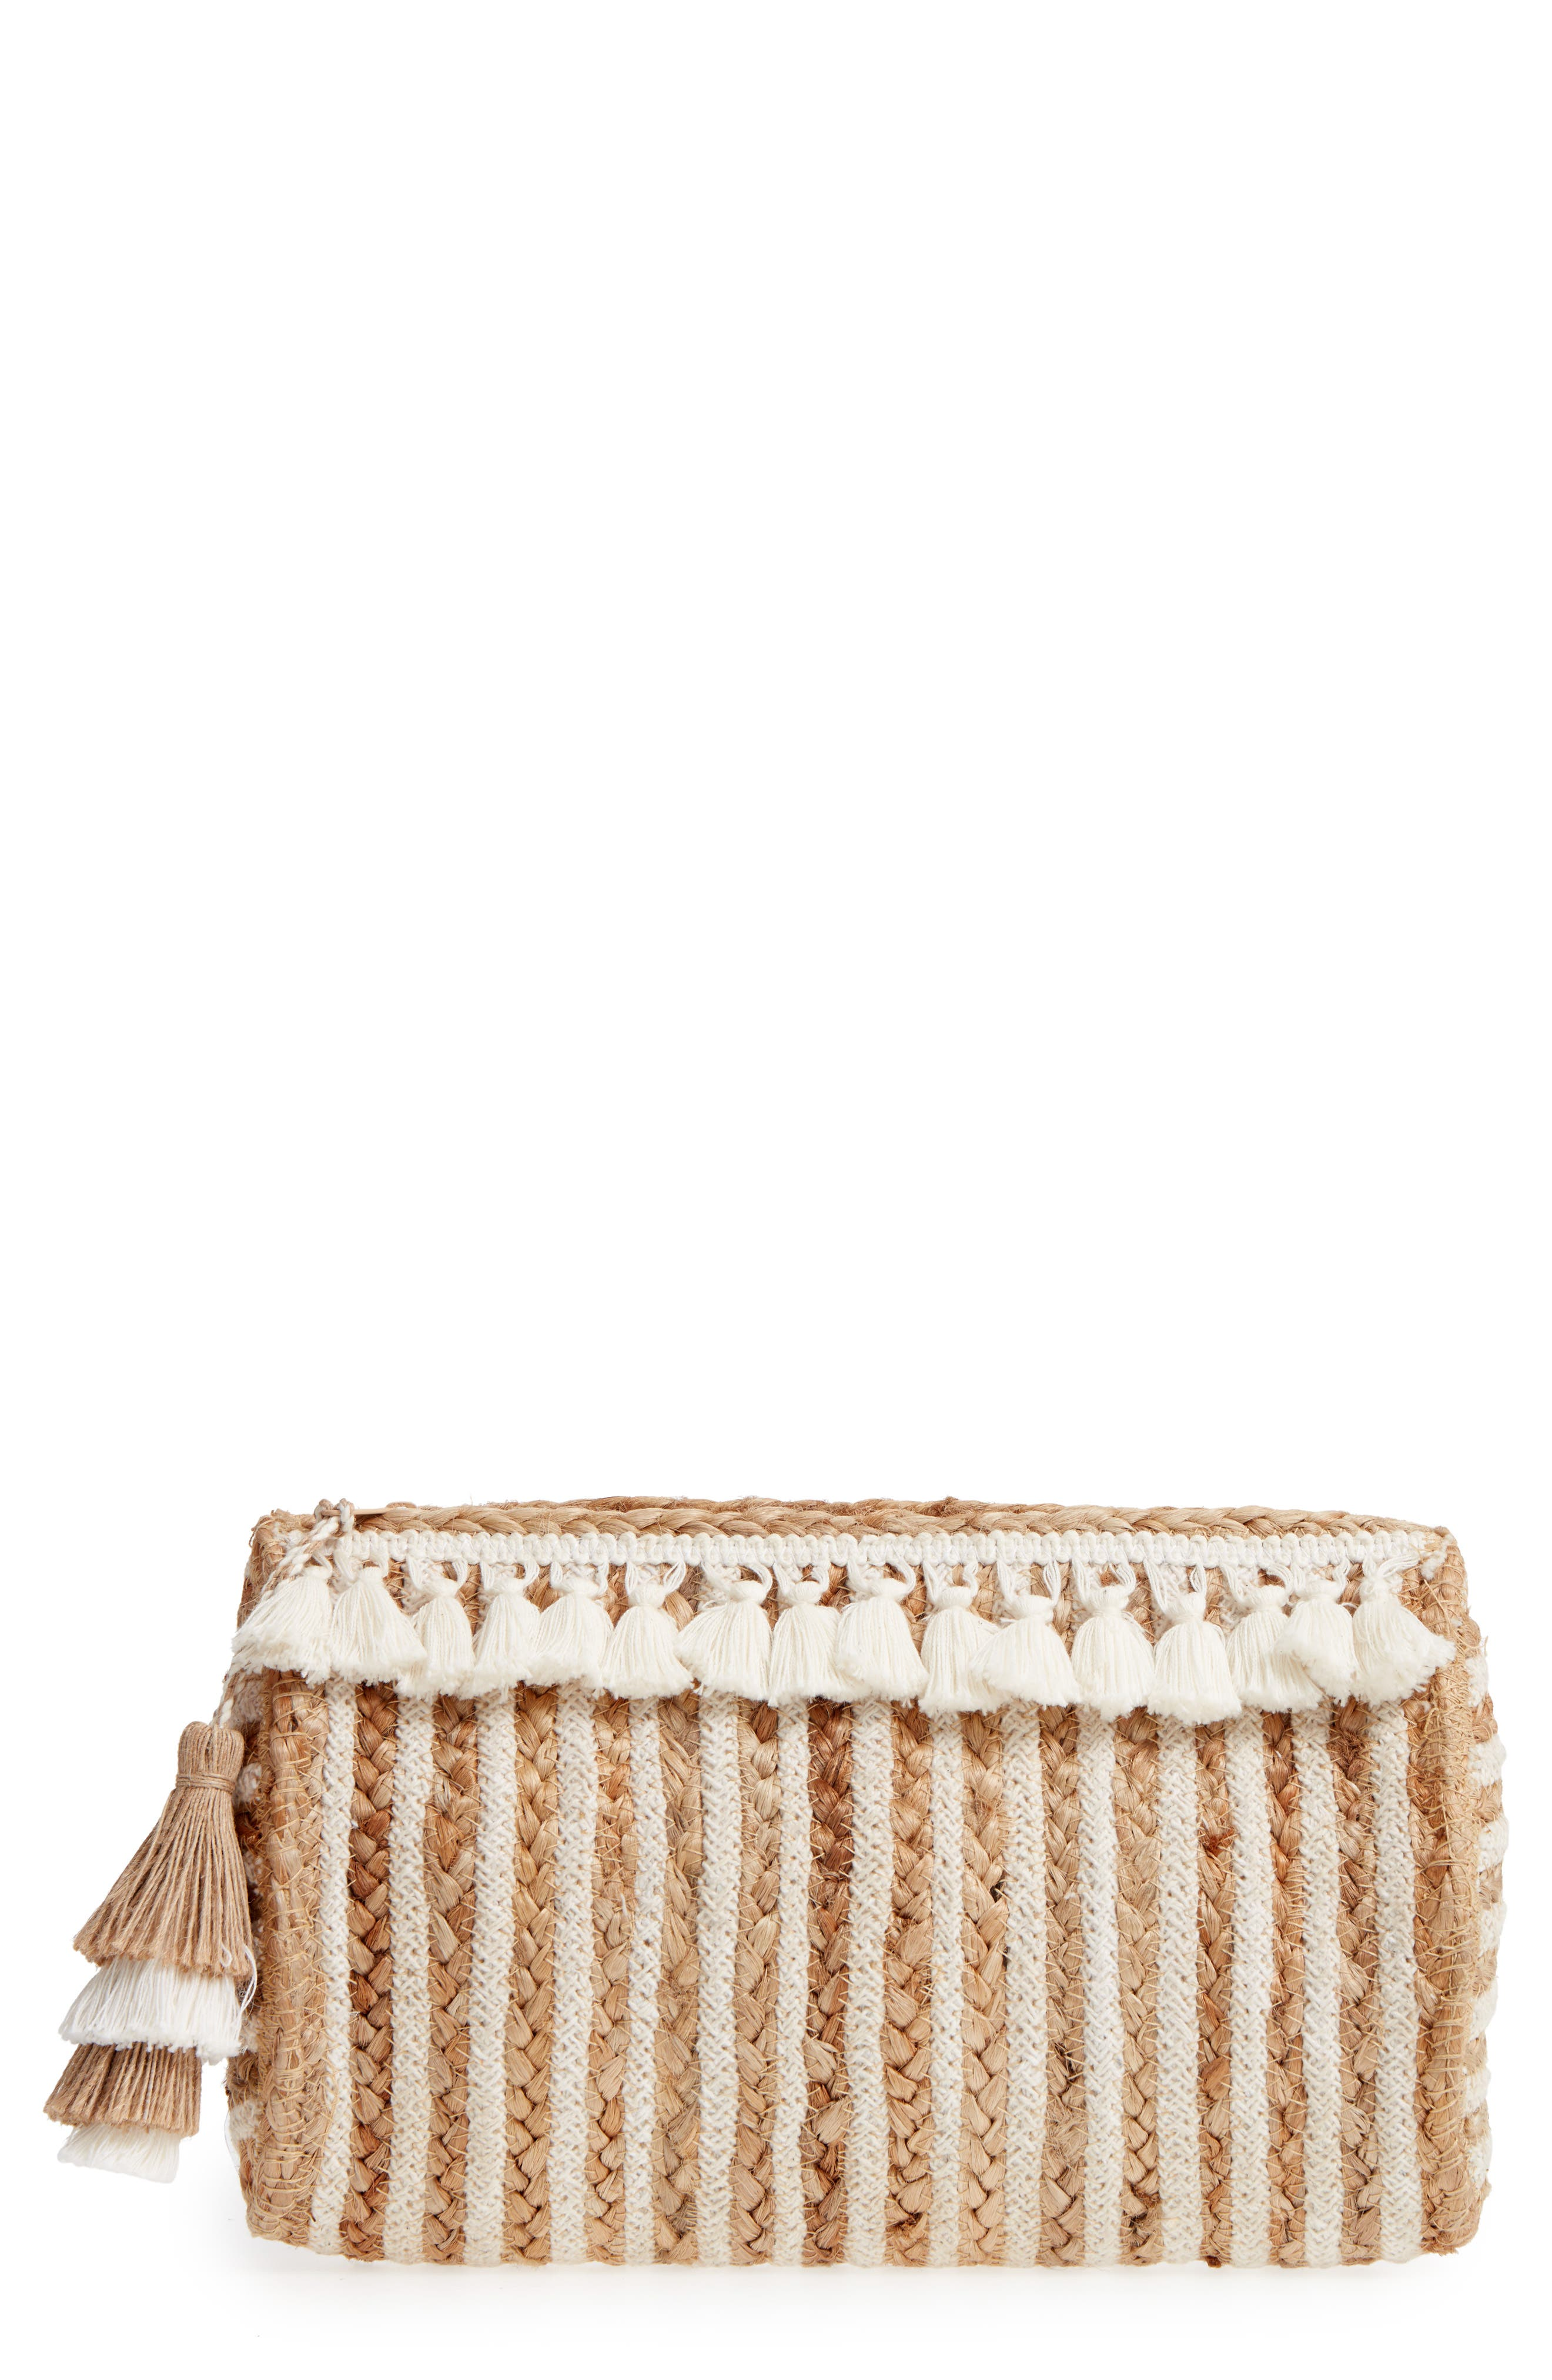 Mare Straw Clutch,                             Main thumbnail 1, color,